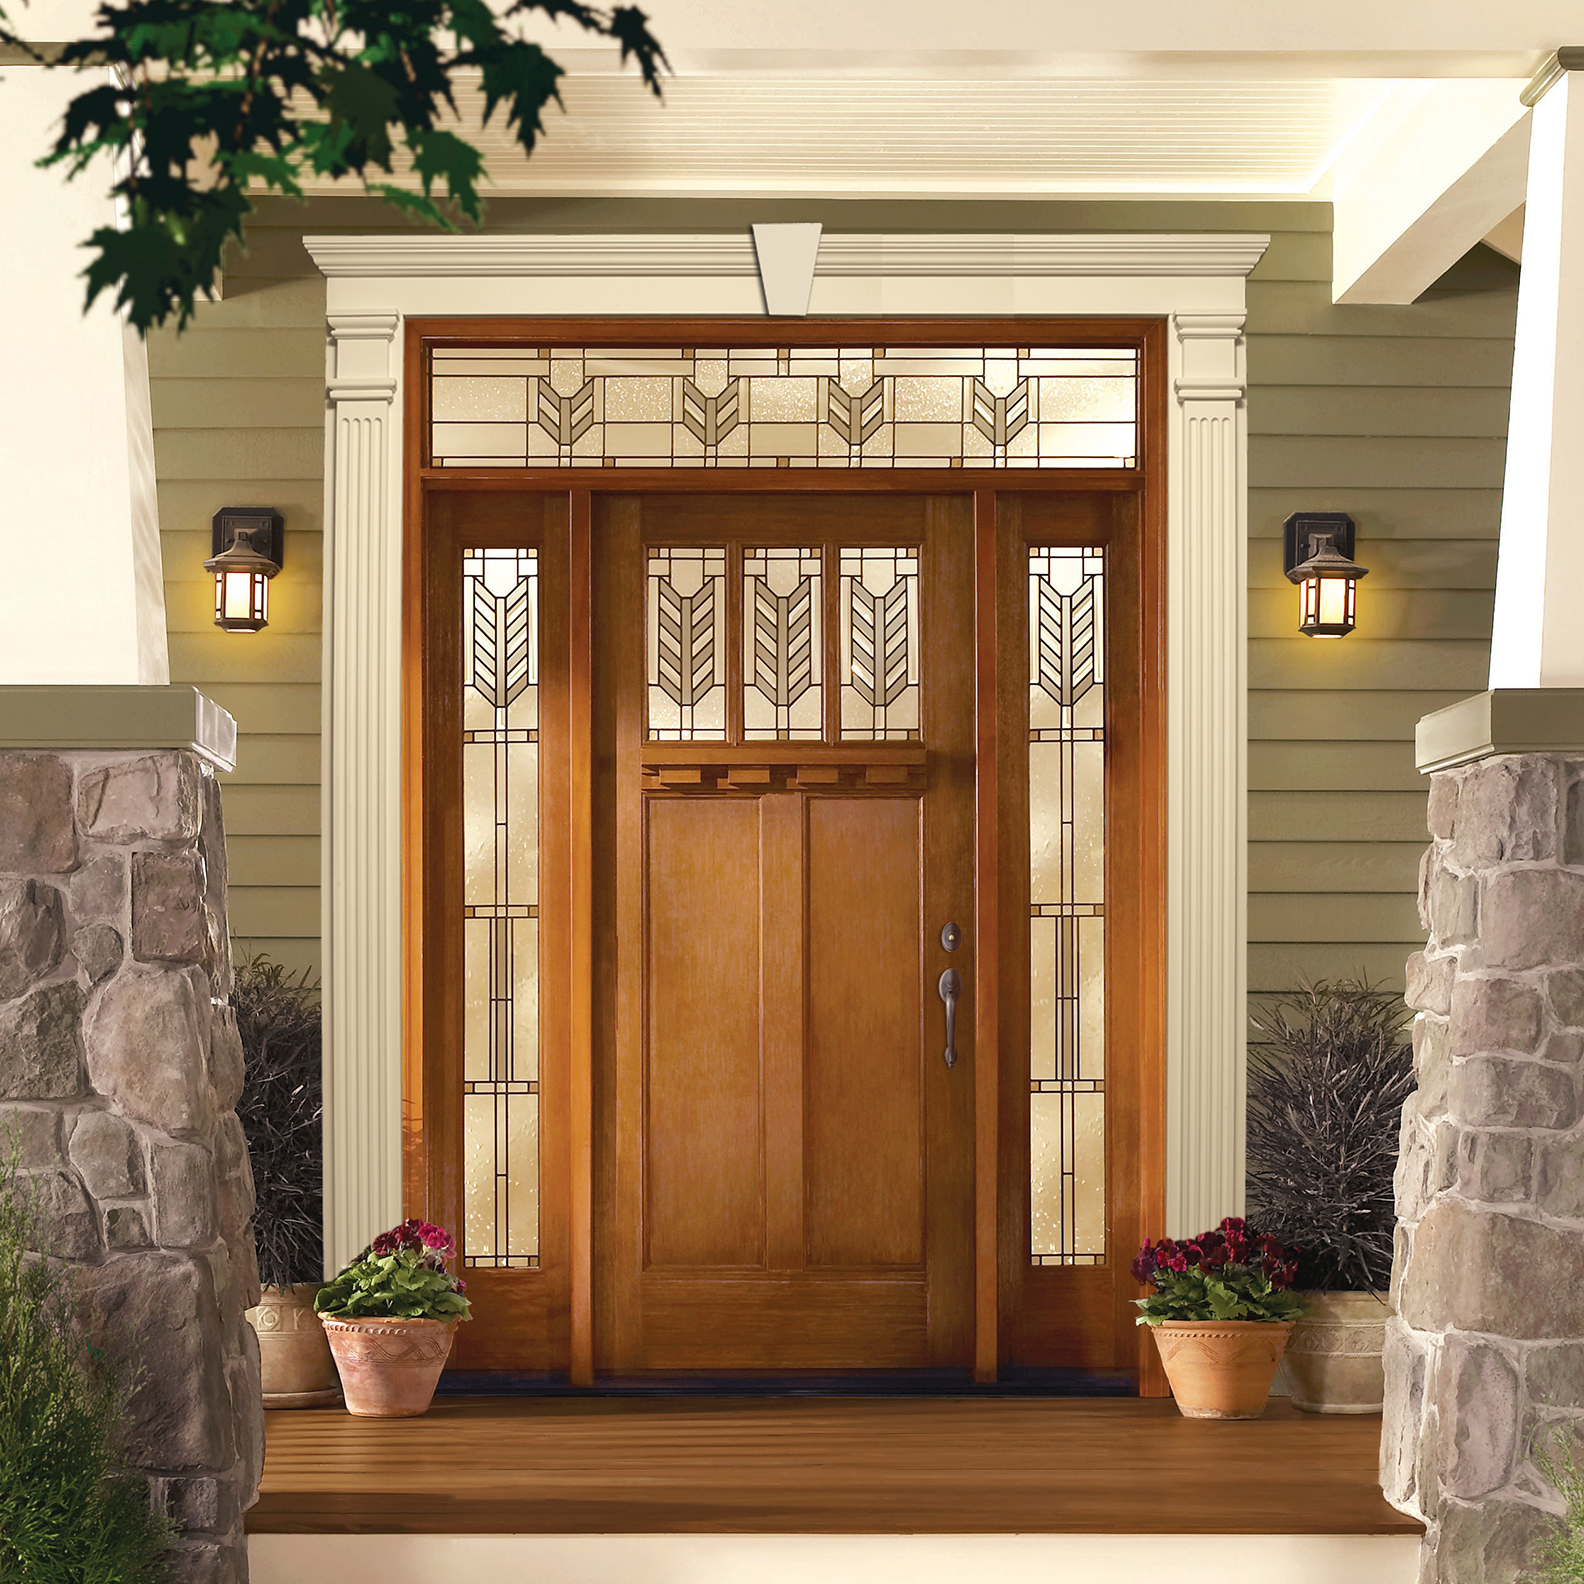 CLASSIC-CRAFT AMERICAN ENTRY DOOR SYSTEM